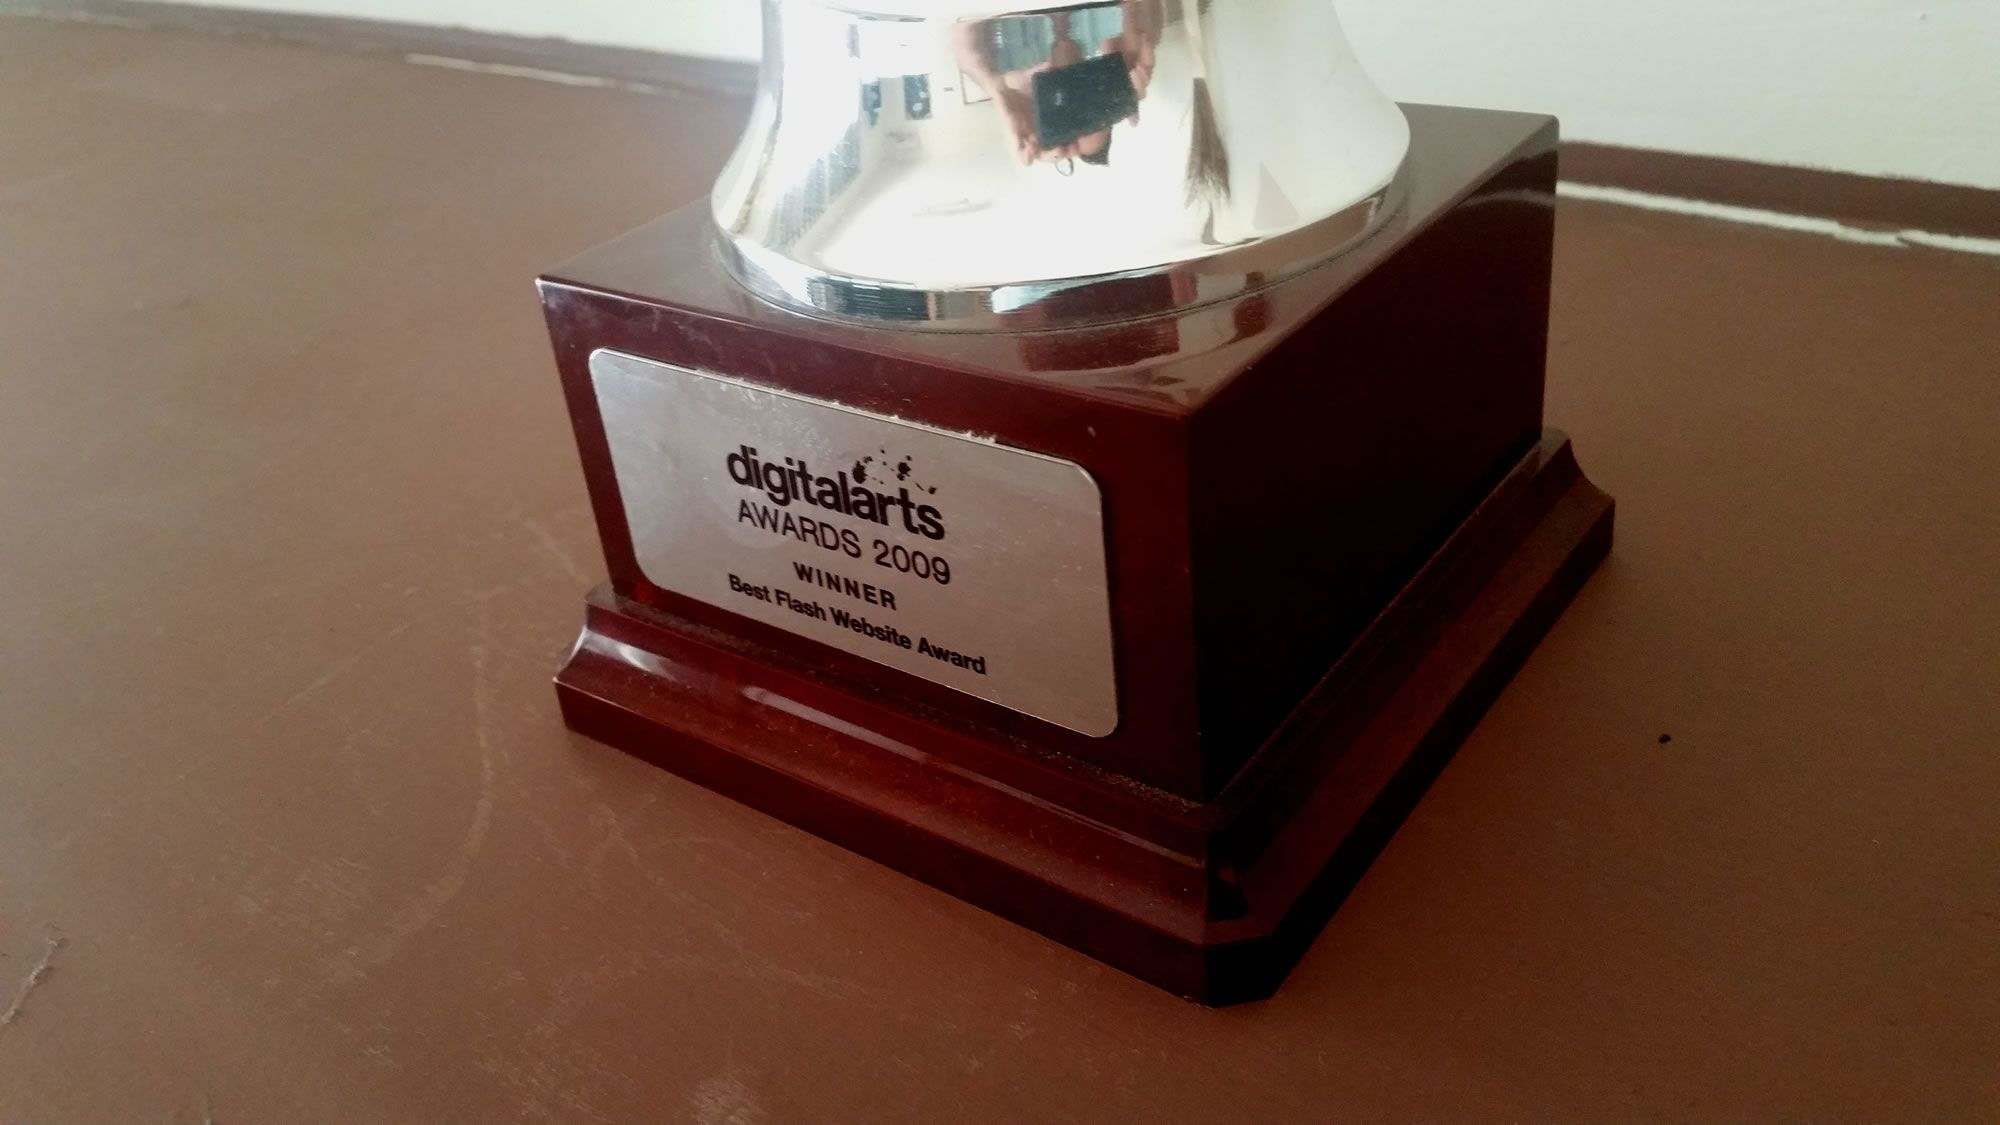 CasaSoft's Best Flash Website Award trophy which was awarded back in 2009 at the Digital Arts Awards 2009.